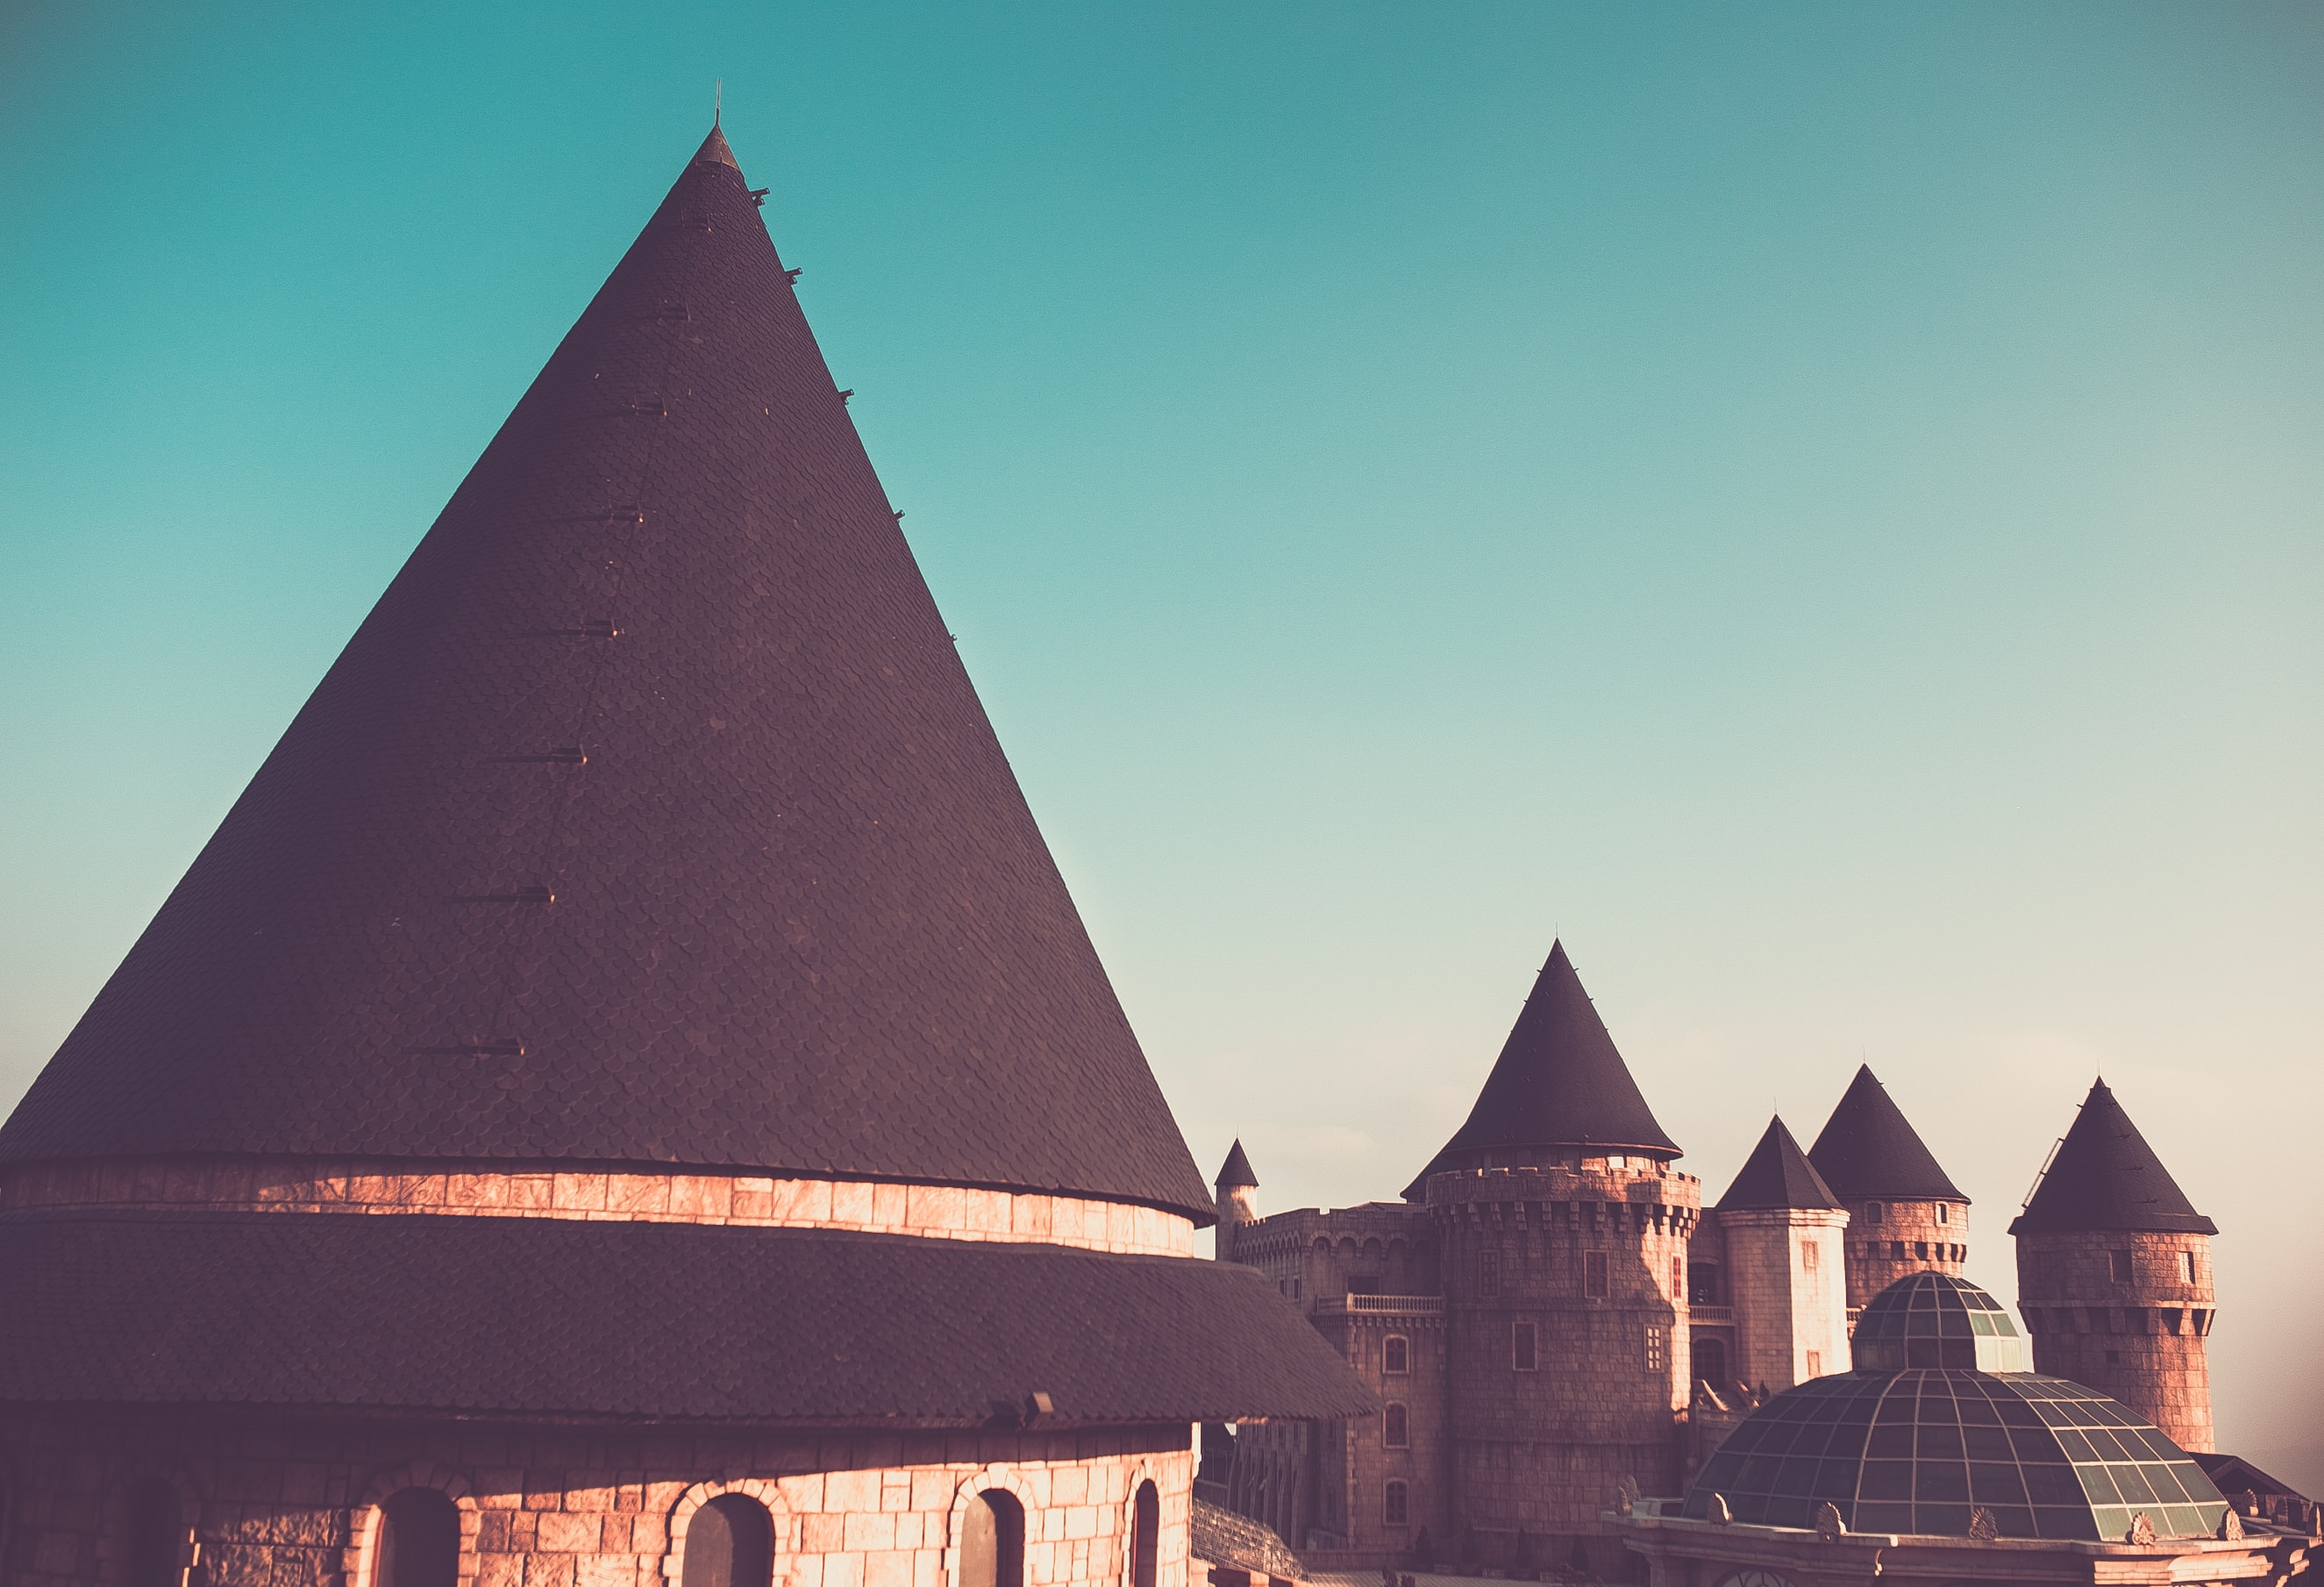 Cone rooftops of a castle building against a blue sky